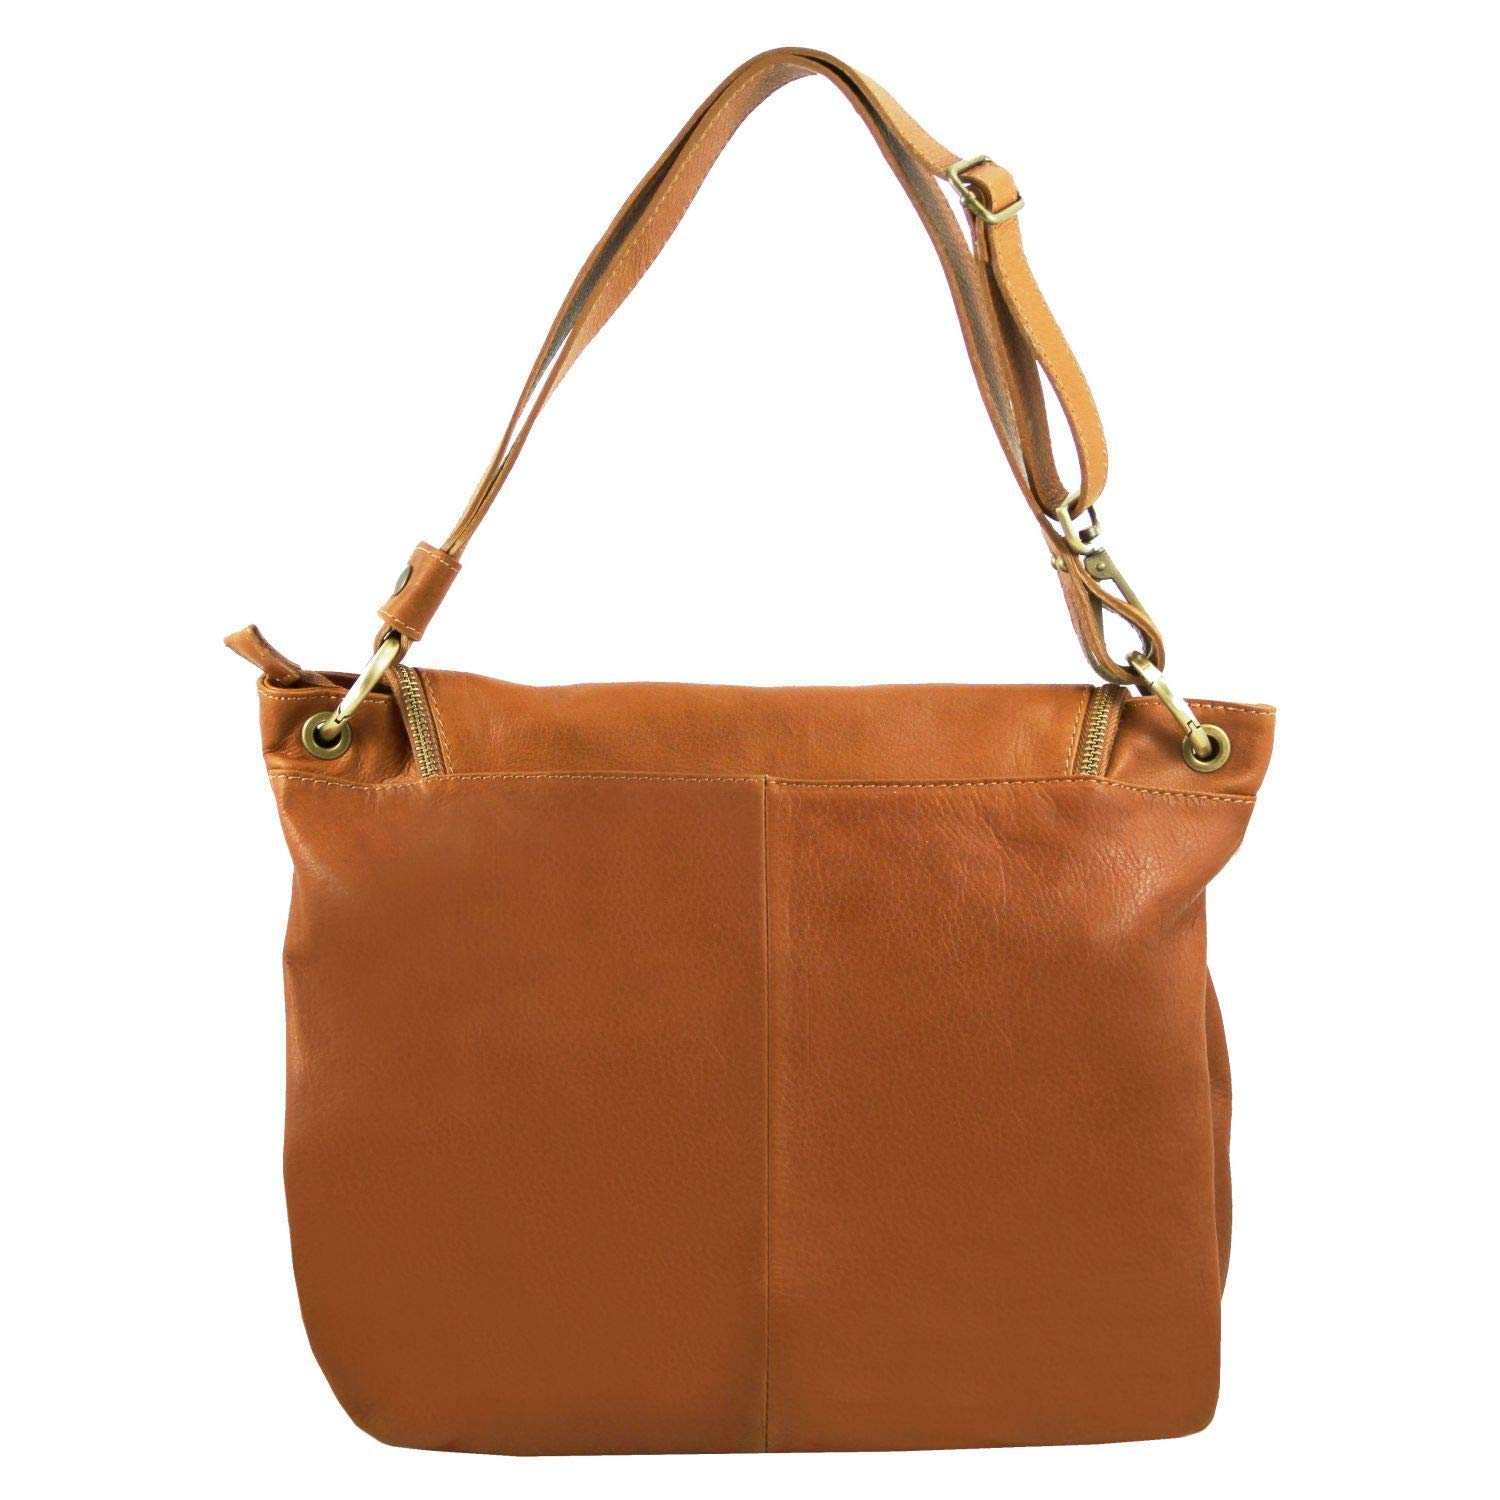 2d537d0a2229 Amazon.com  Tuscany Leather TLBag Soft leather shoulder bag with tassel  detail Cognac  Tuscany Leather Official Store